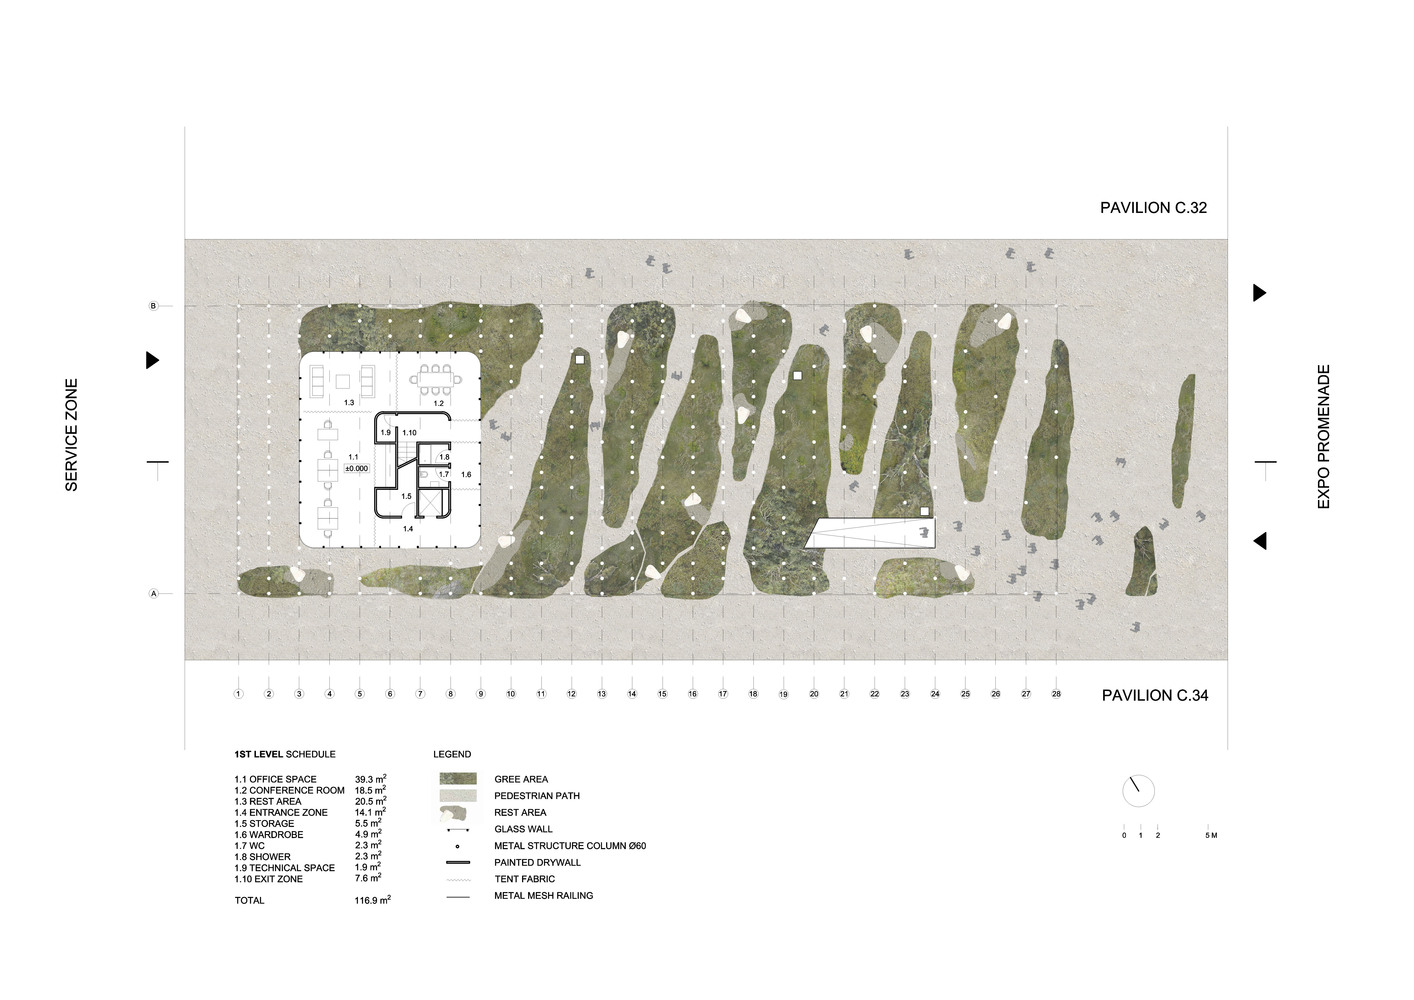 Zone 6 Planting Schedule 2020 Gallery of Malitis Architects' Proposal for Latvian Pavilion in